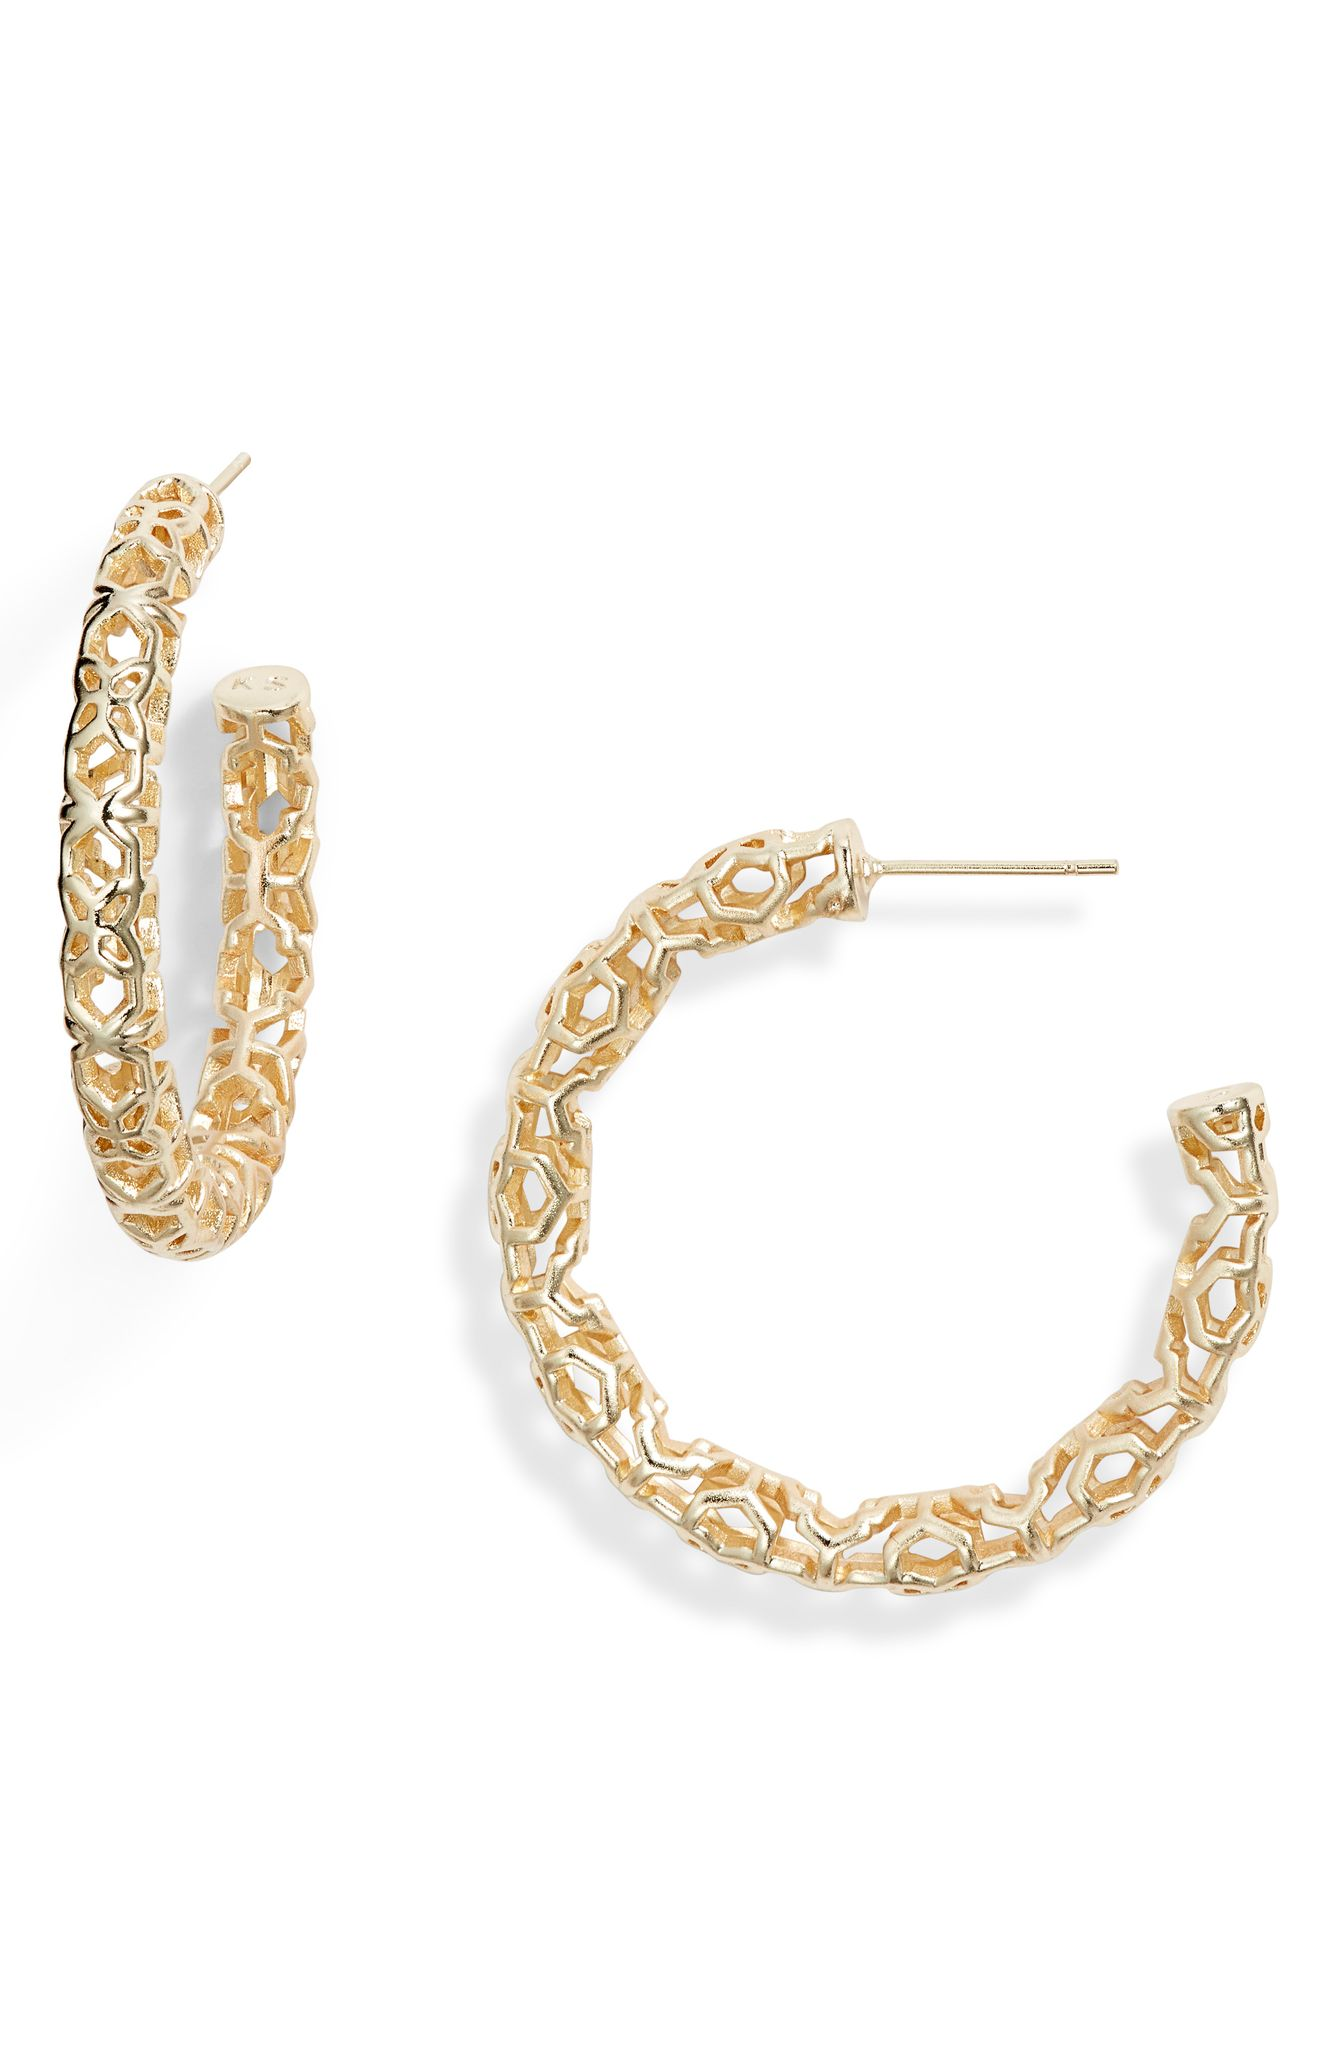 Kendra Scott Maggie 1.5 Hoop Earrings (normally $58): NOW $37.90 (Image: Nordstrom){ }